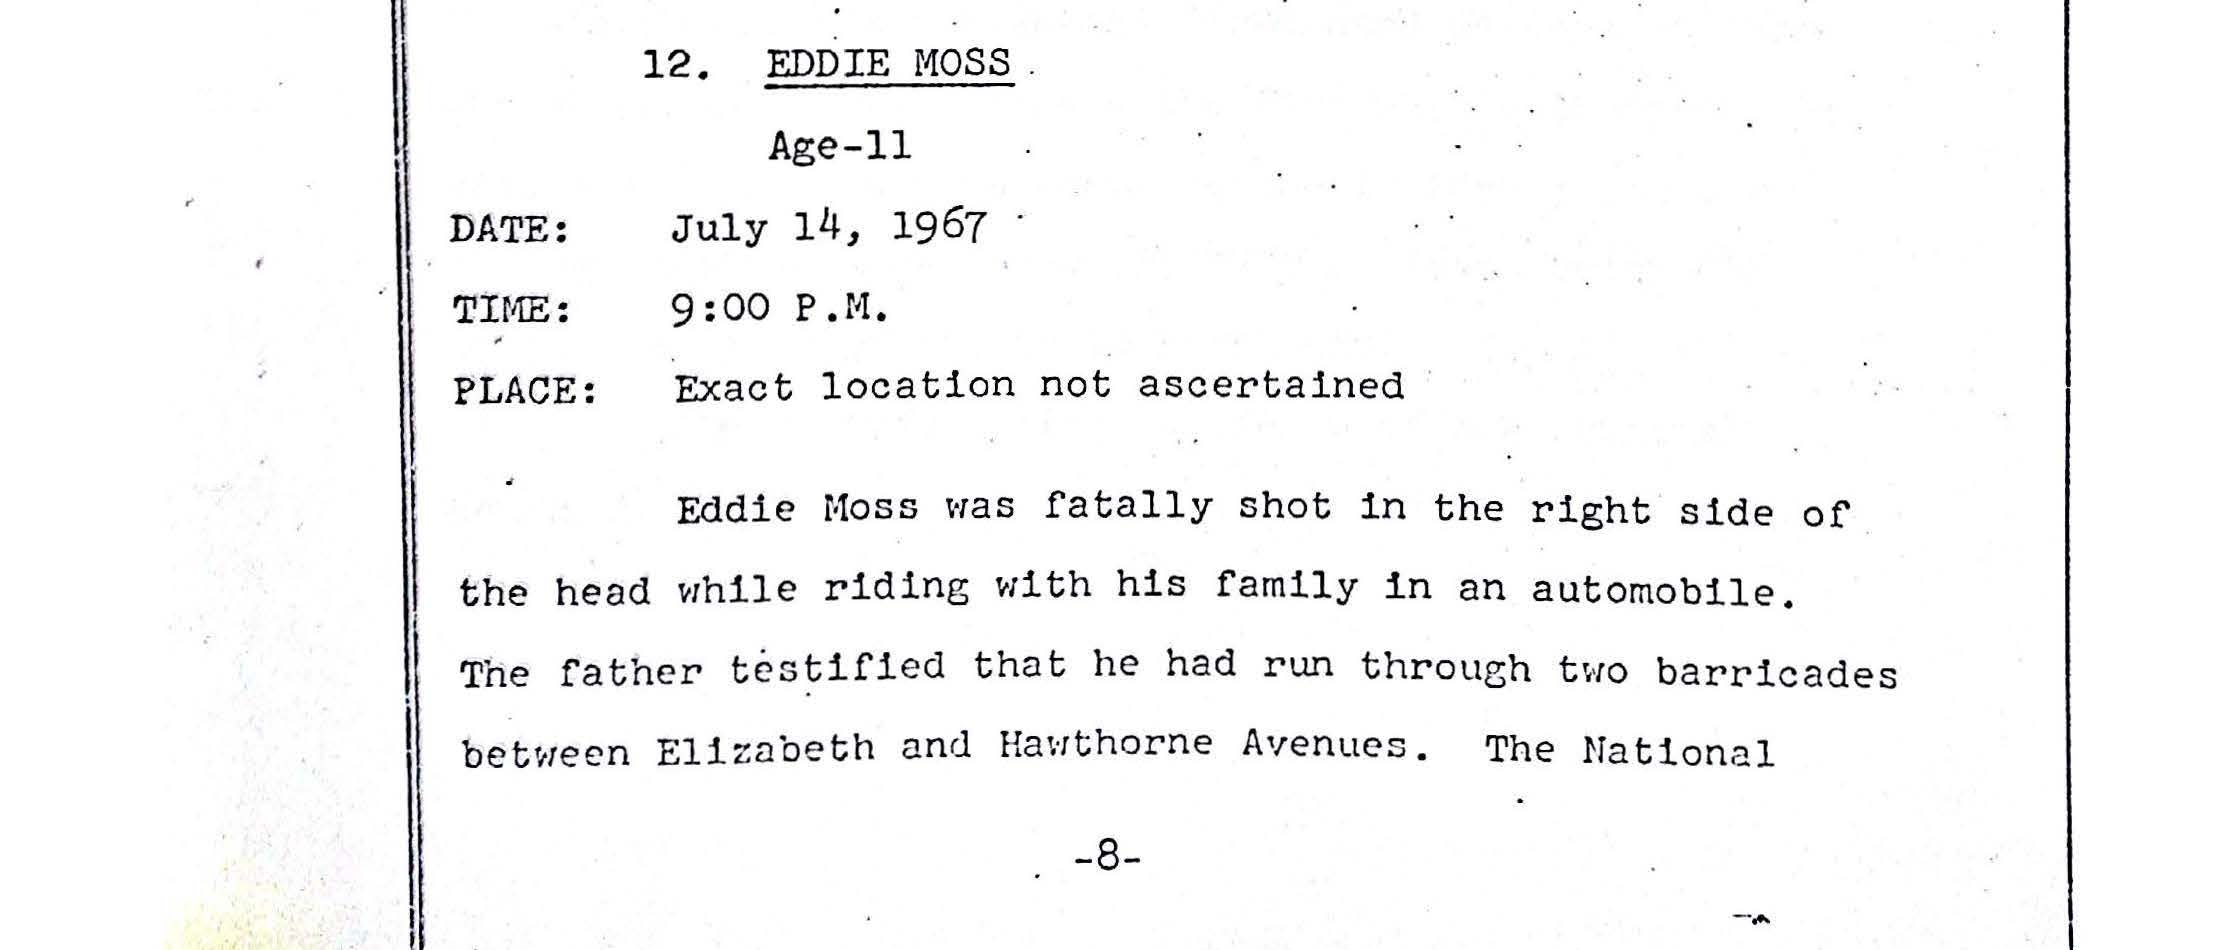 Grand Jury Report on Death of Eddie Moss